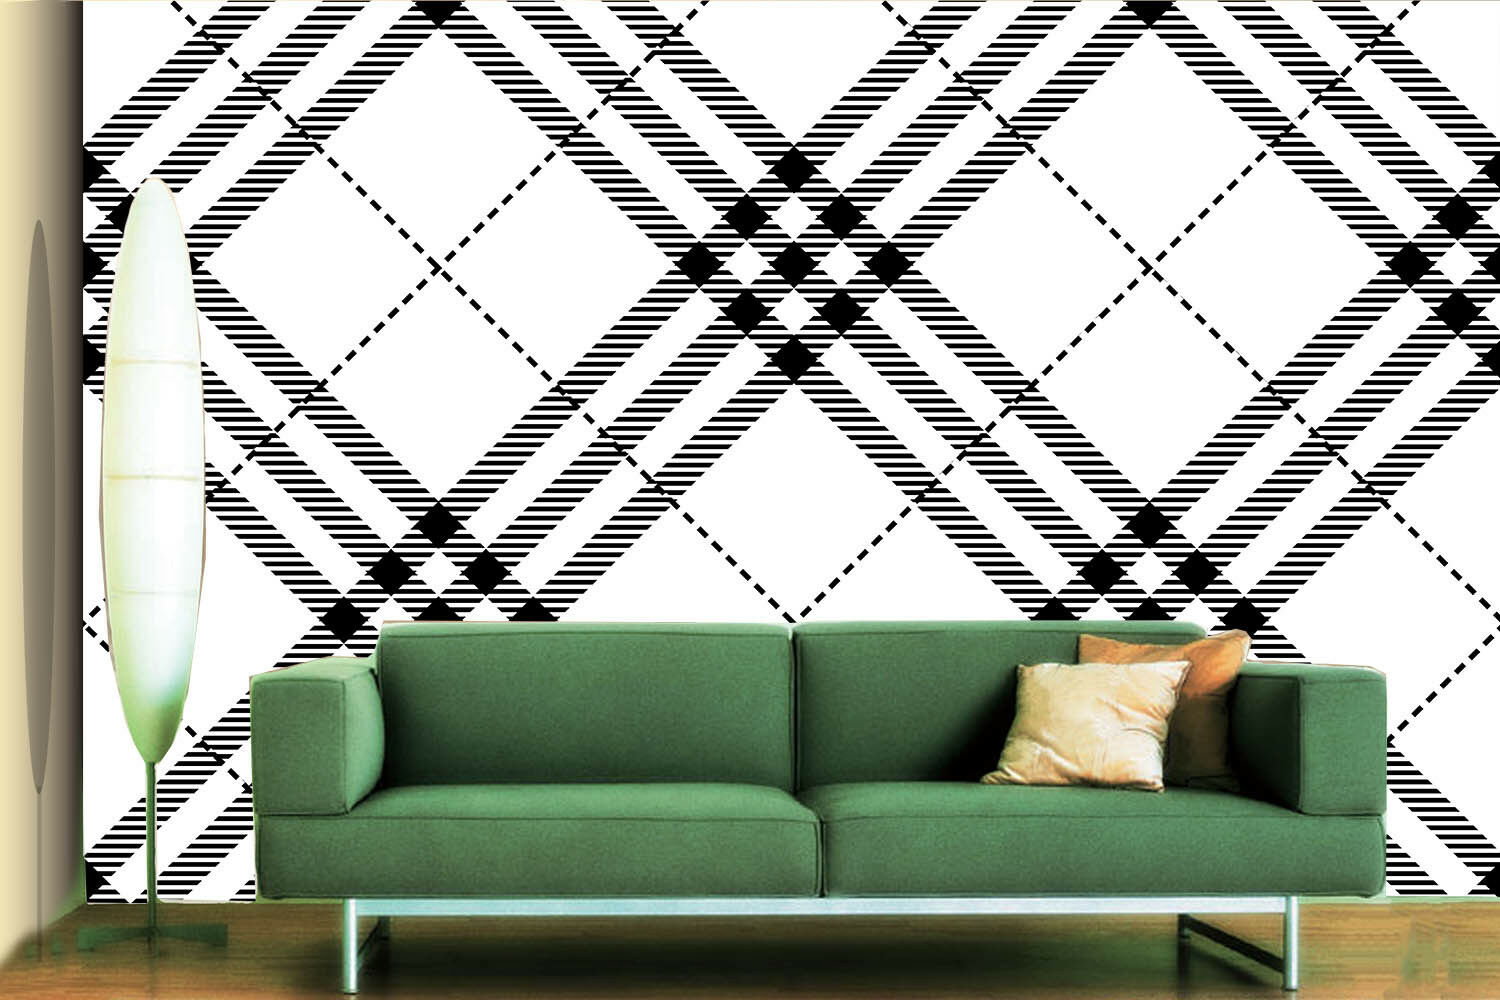 3D Grid Texture 722 Wallpaper Mural Paper Wall Print Wallpaper Murals UK Lemon